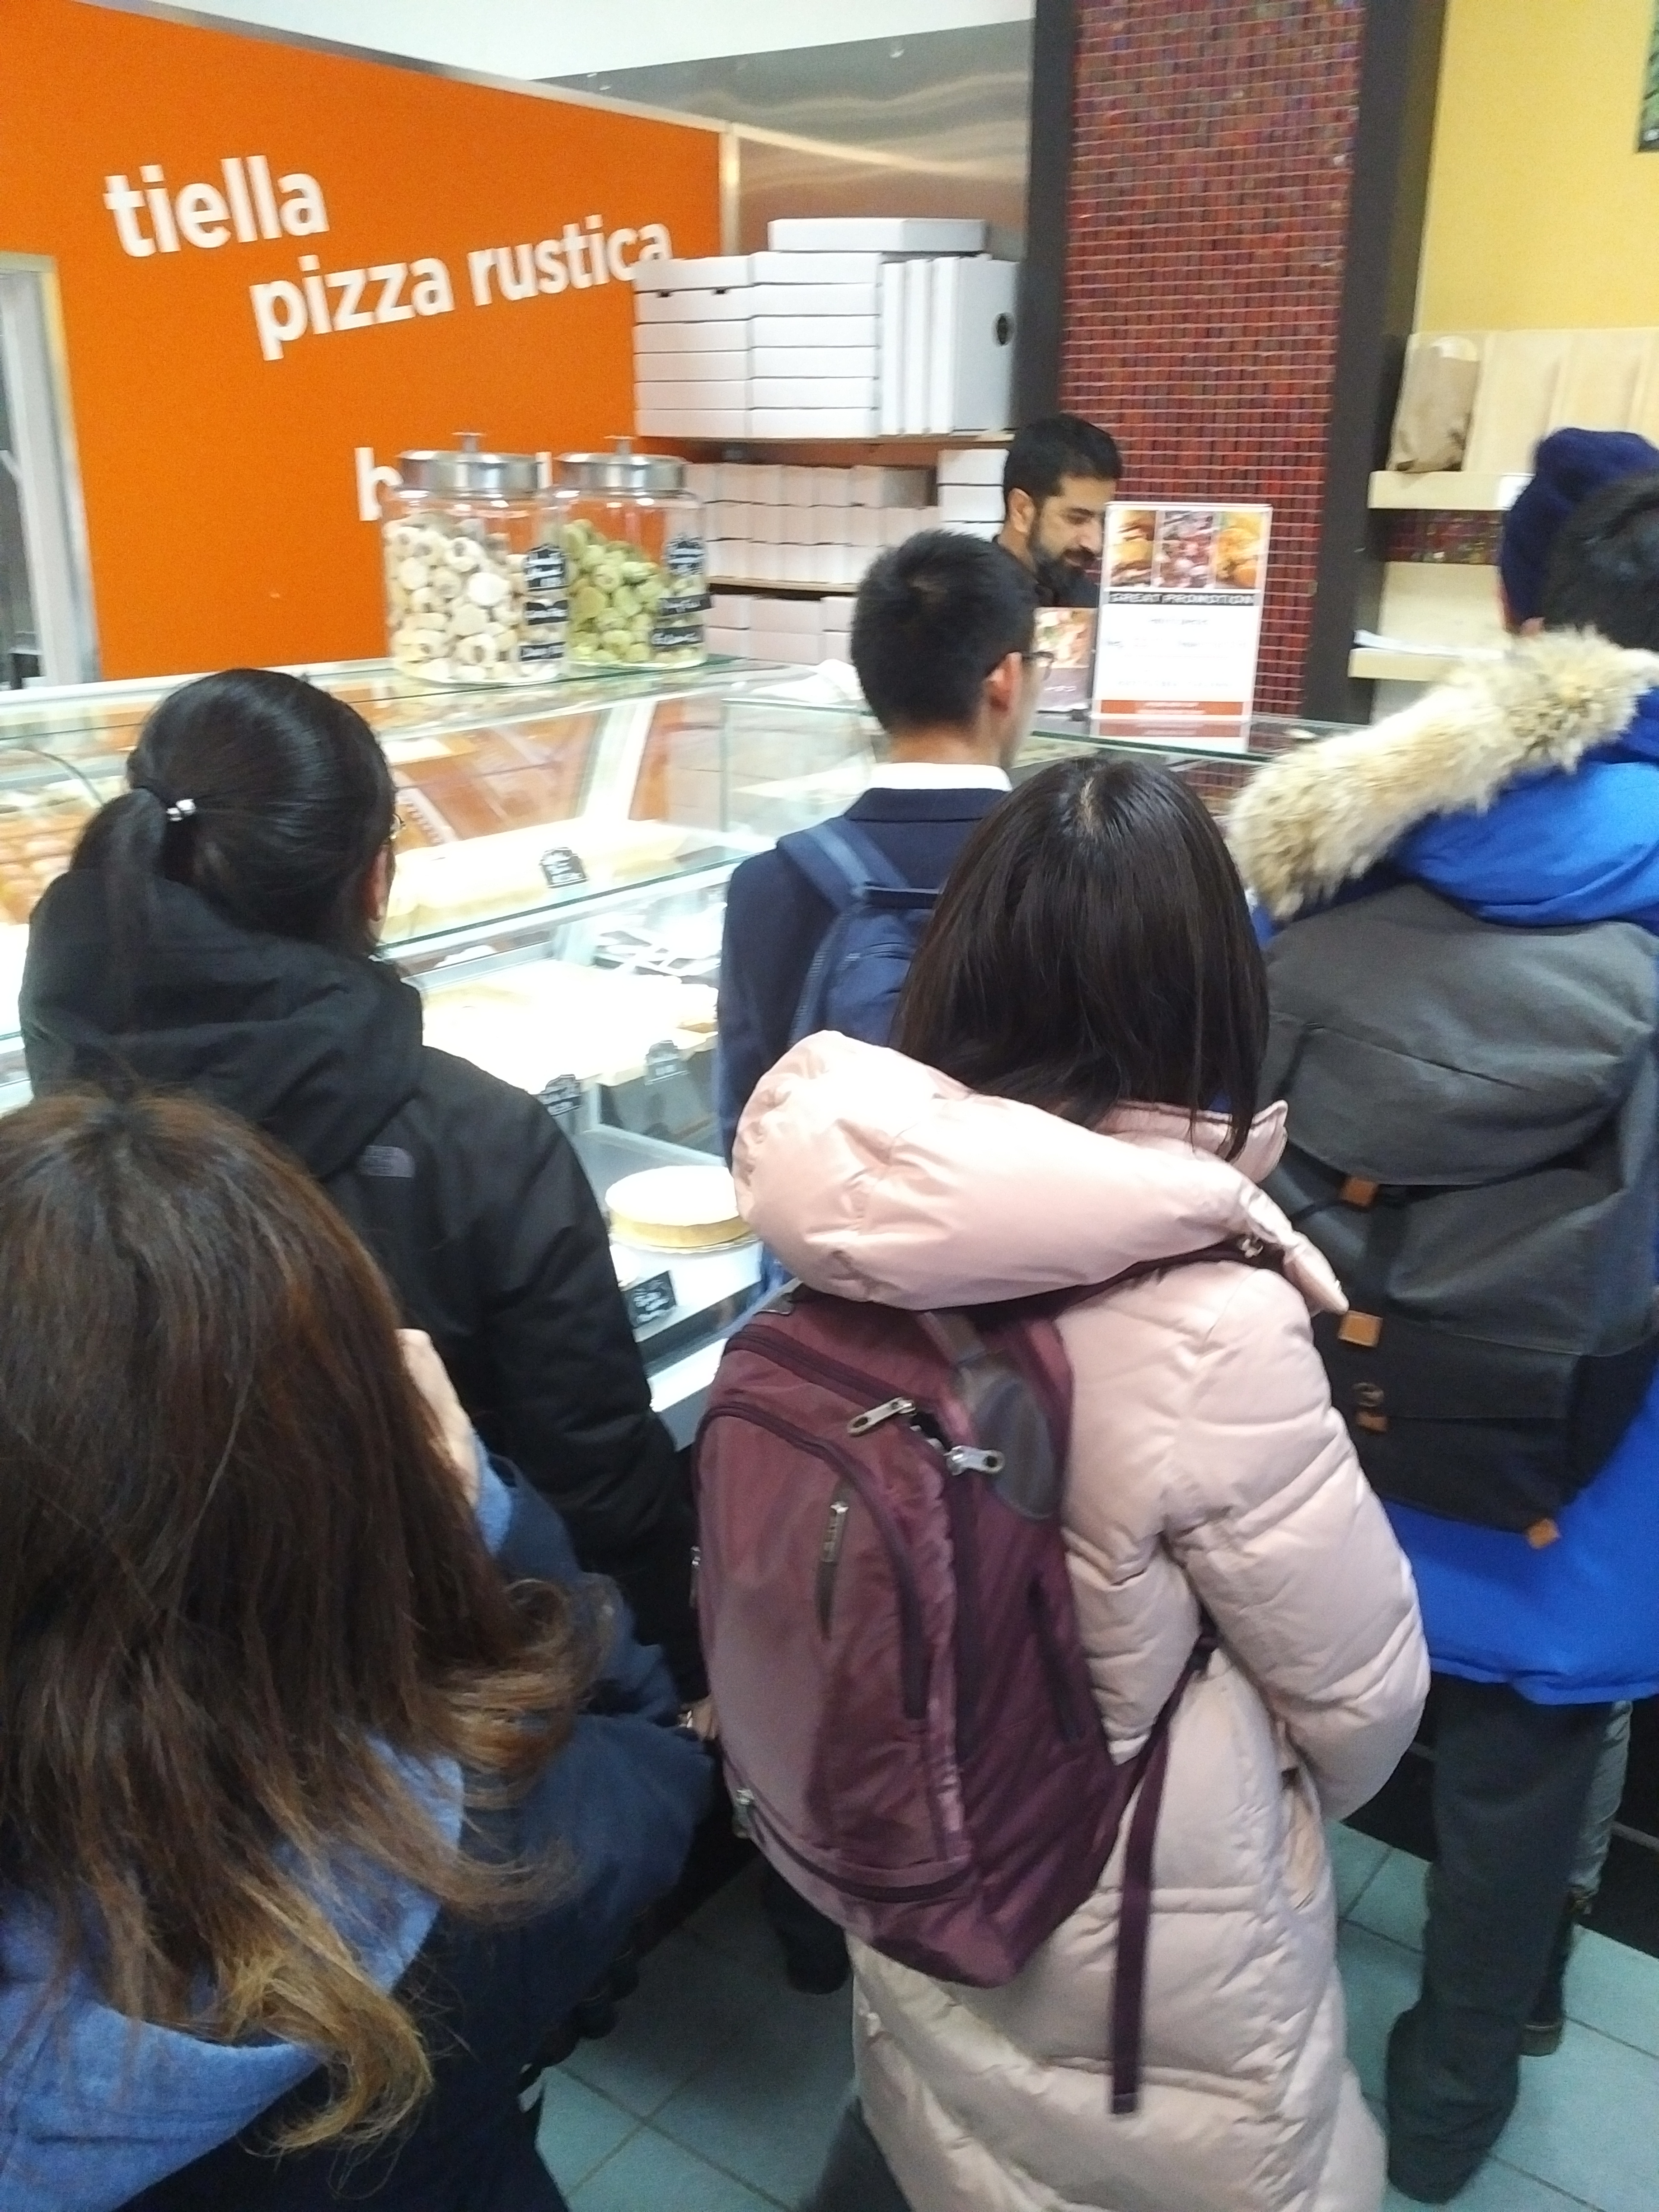 Volunteers being treated to pizza and pastries after their hard work